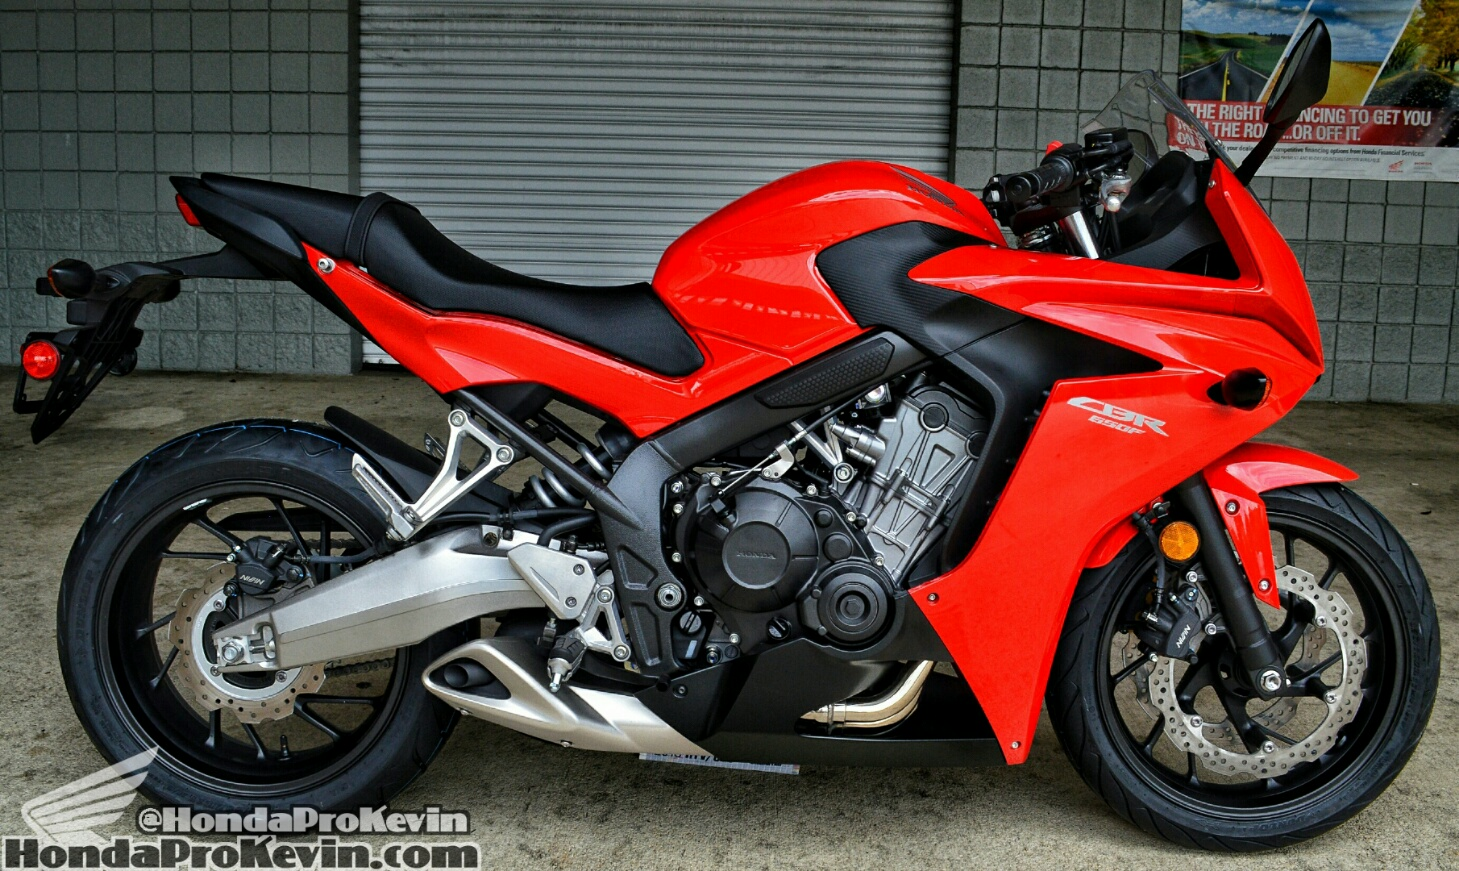 2015 honda cbr650f review specs pictures videos honda pro kevin. Black Bedroom Furniture Sets. Home Design Ideas